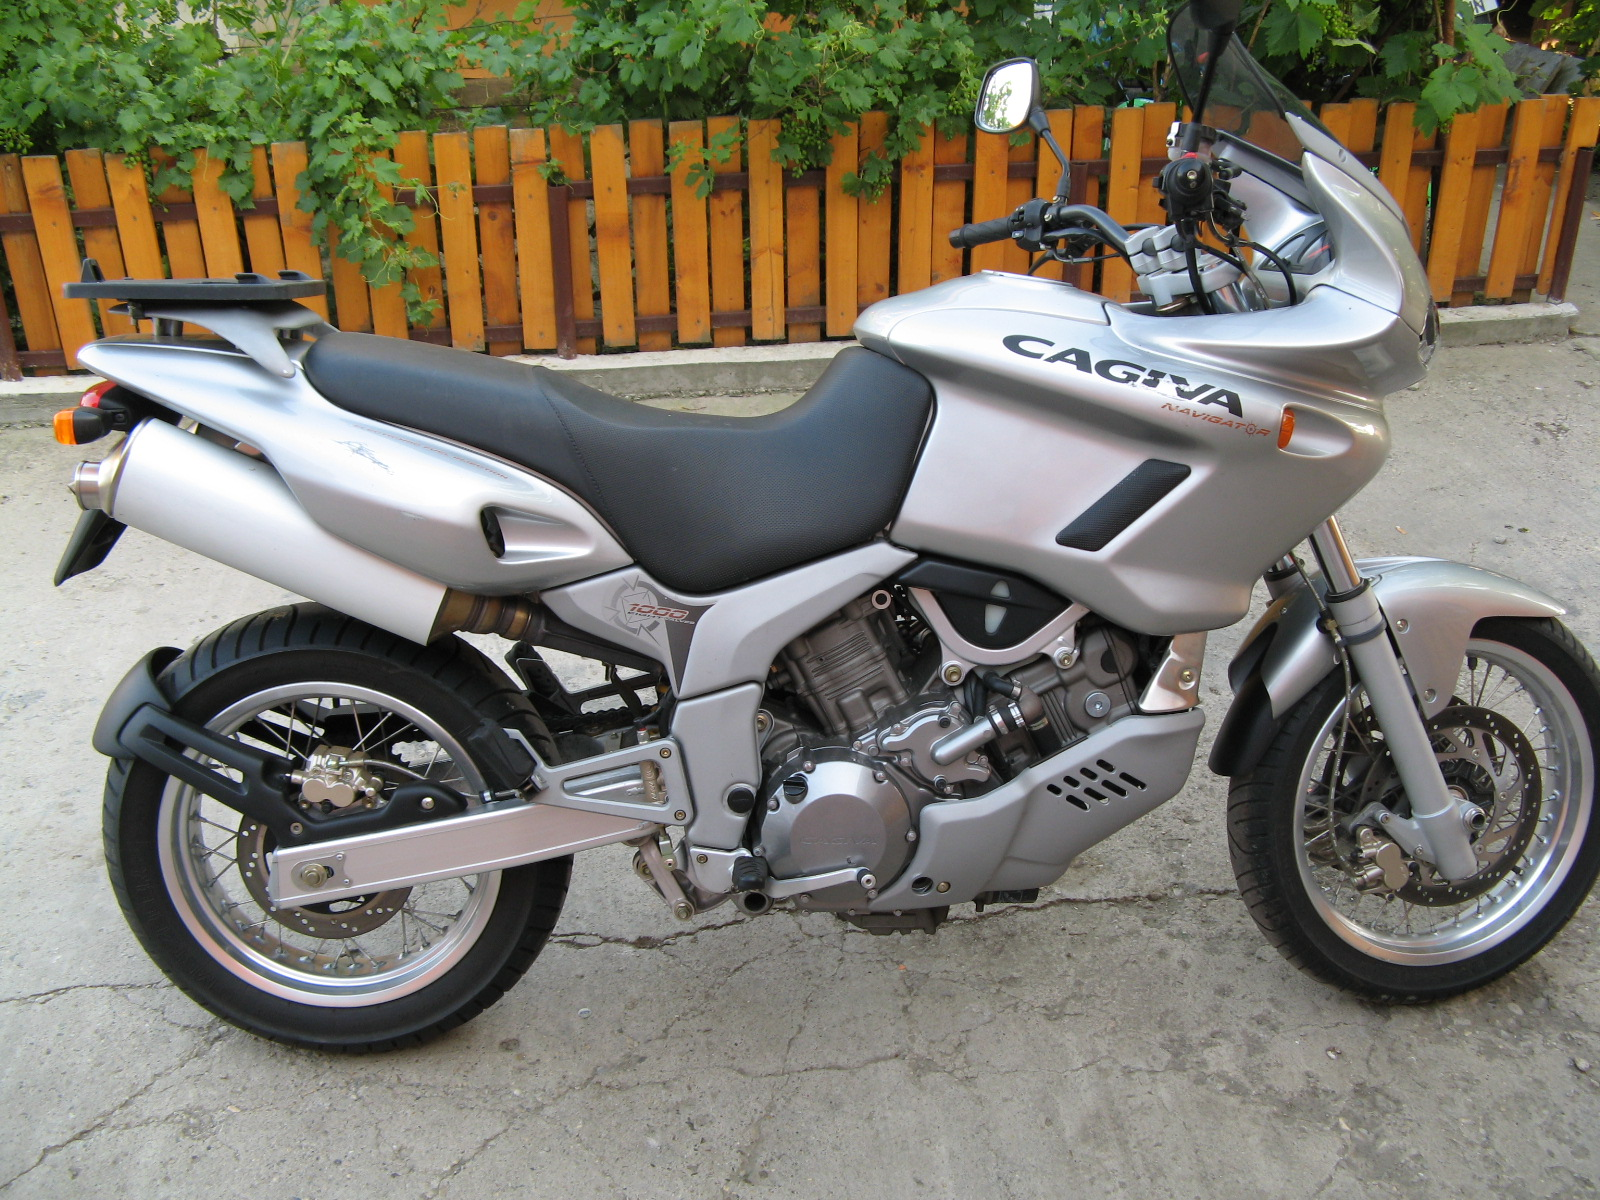 Cagiva Navigator 1000 images #69699